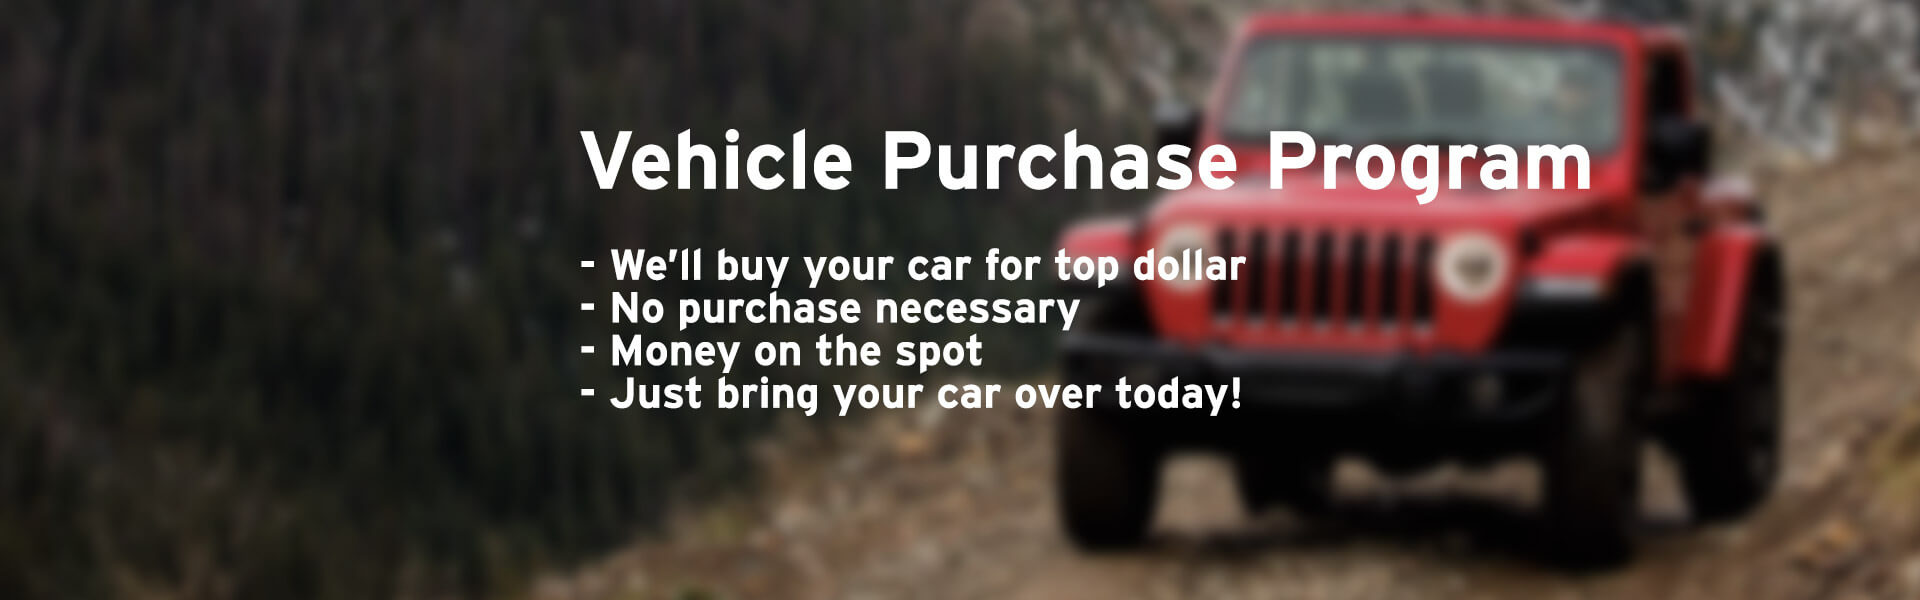 Vehicle Purchase Program